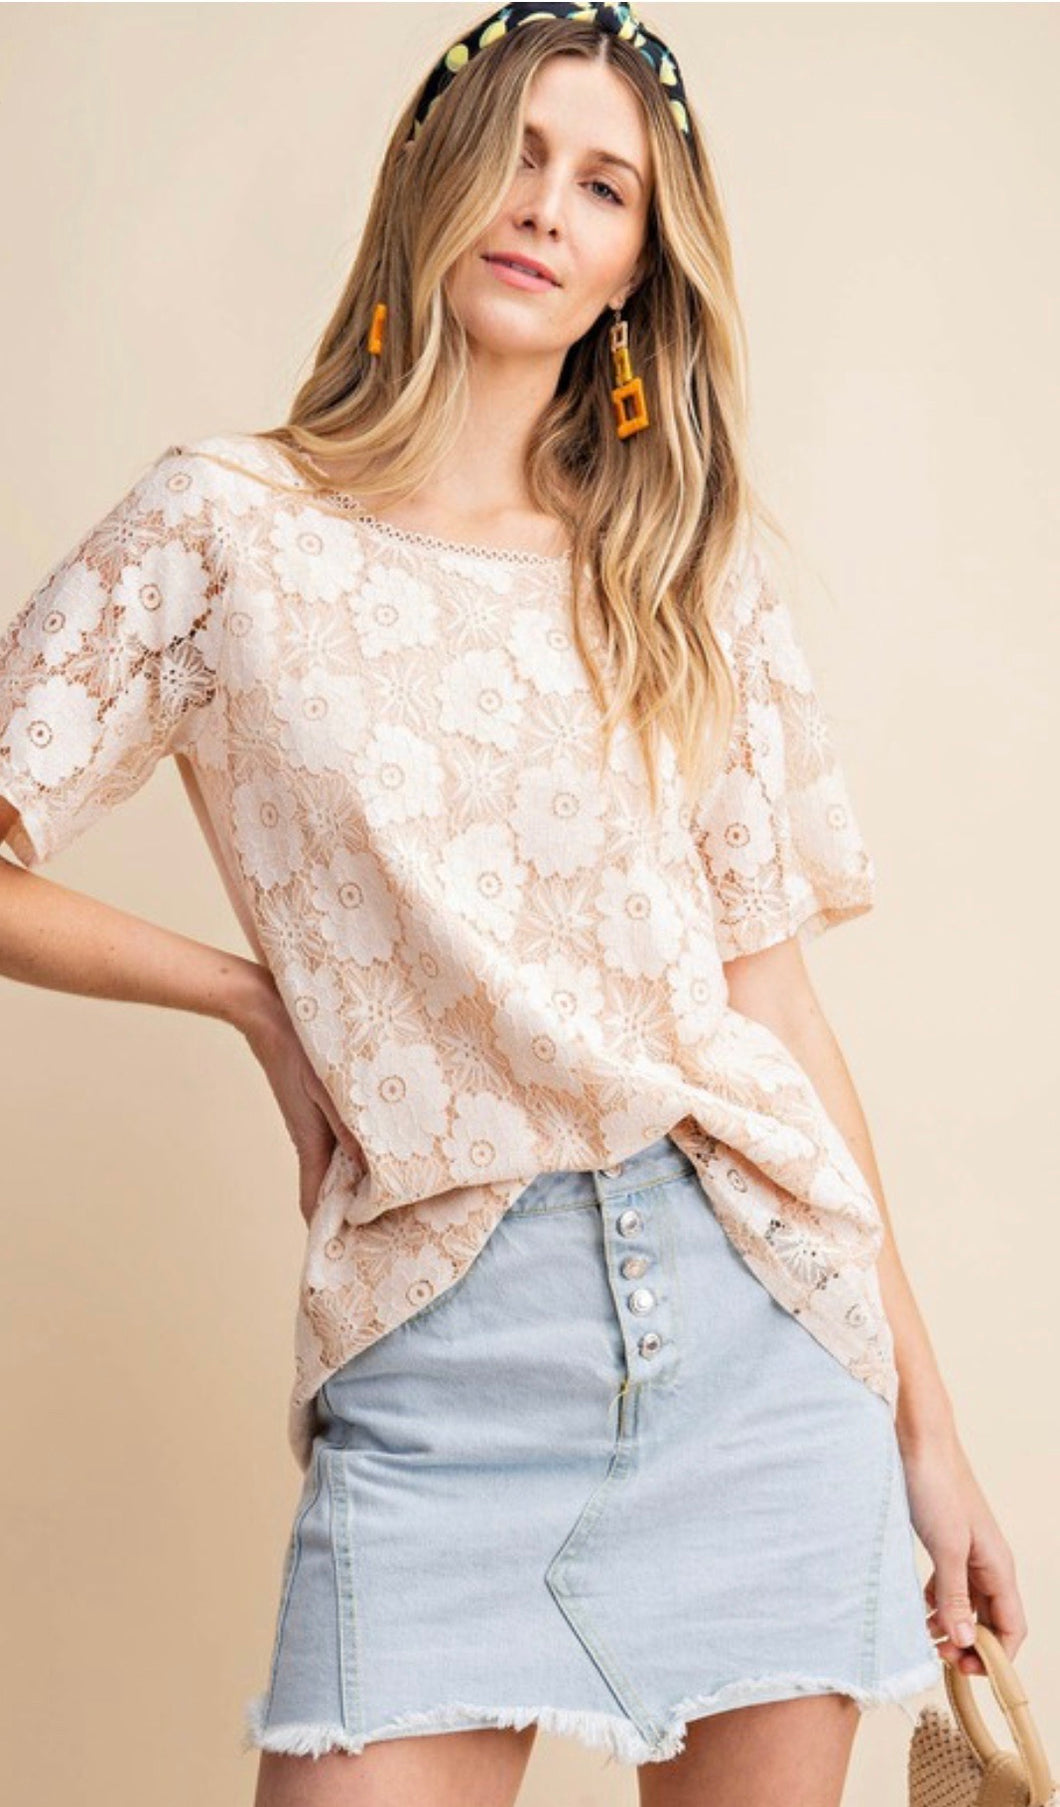 The Jessie Top